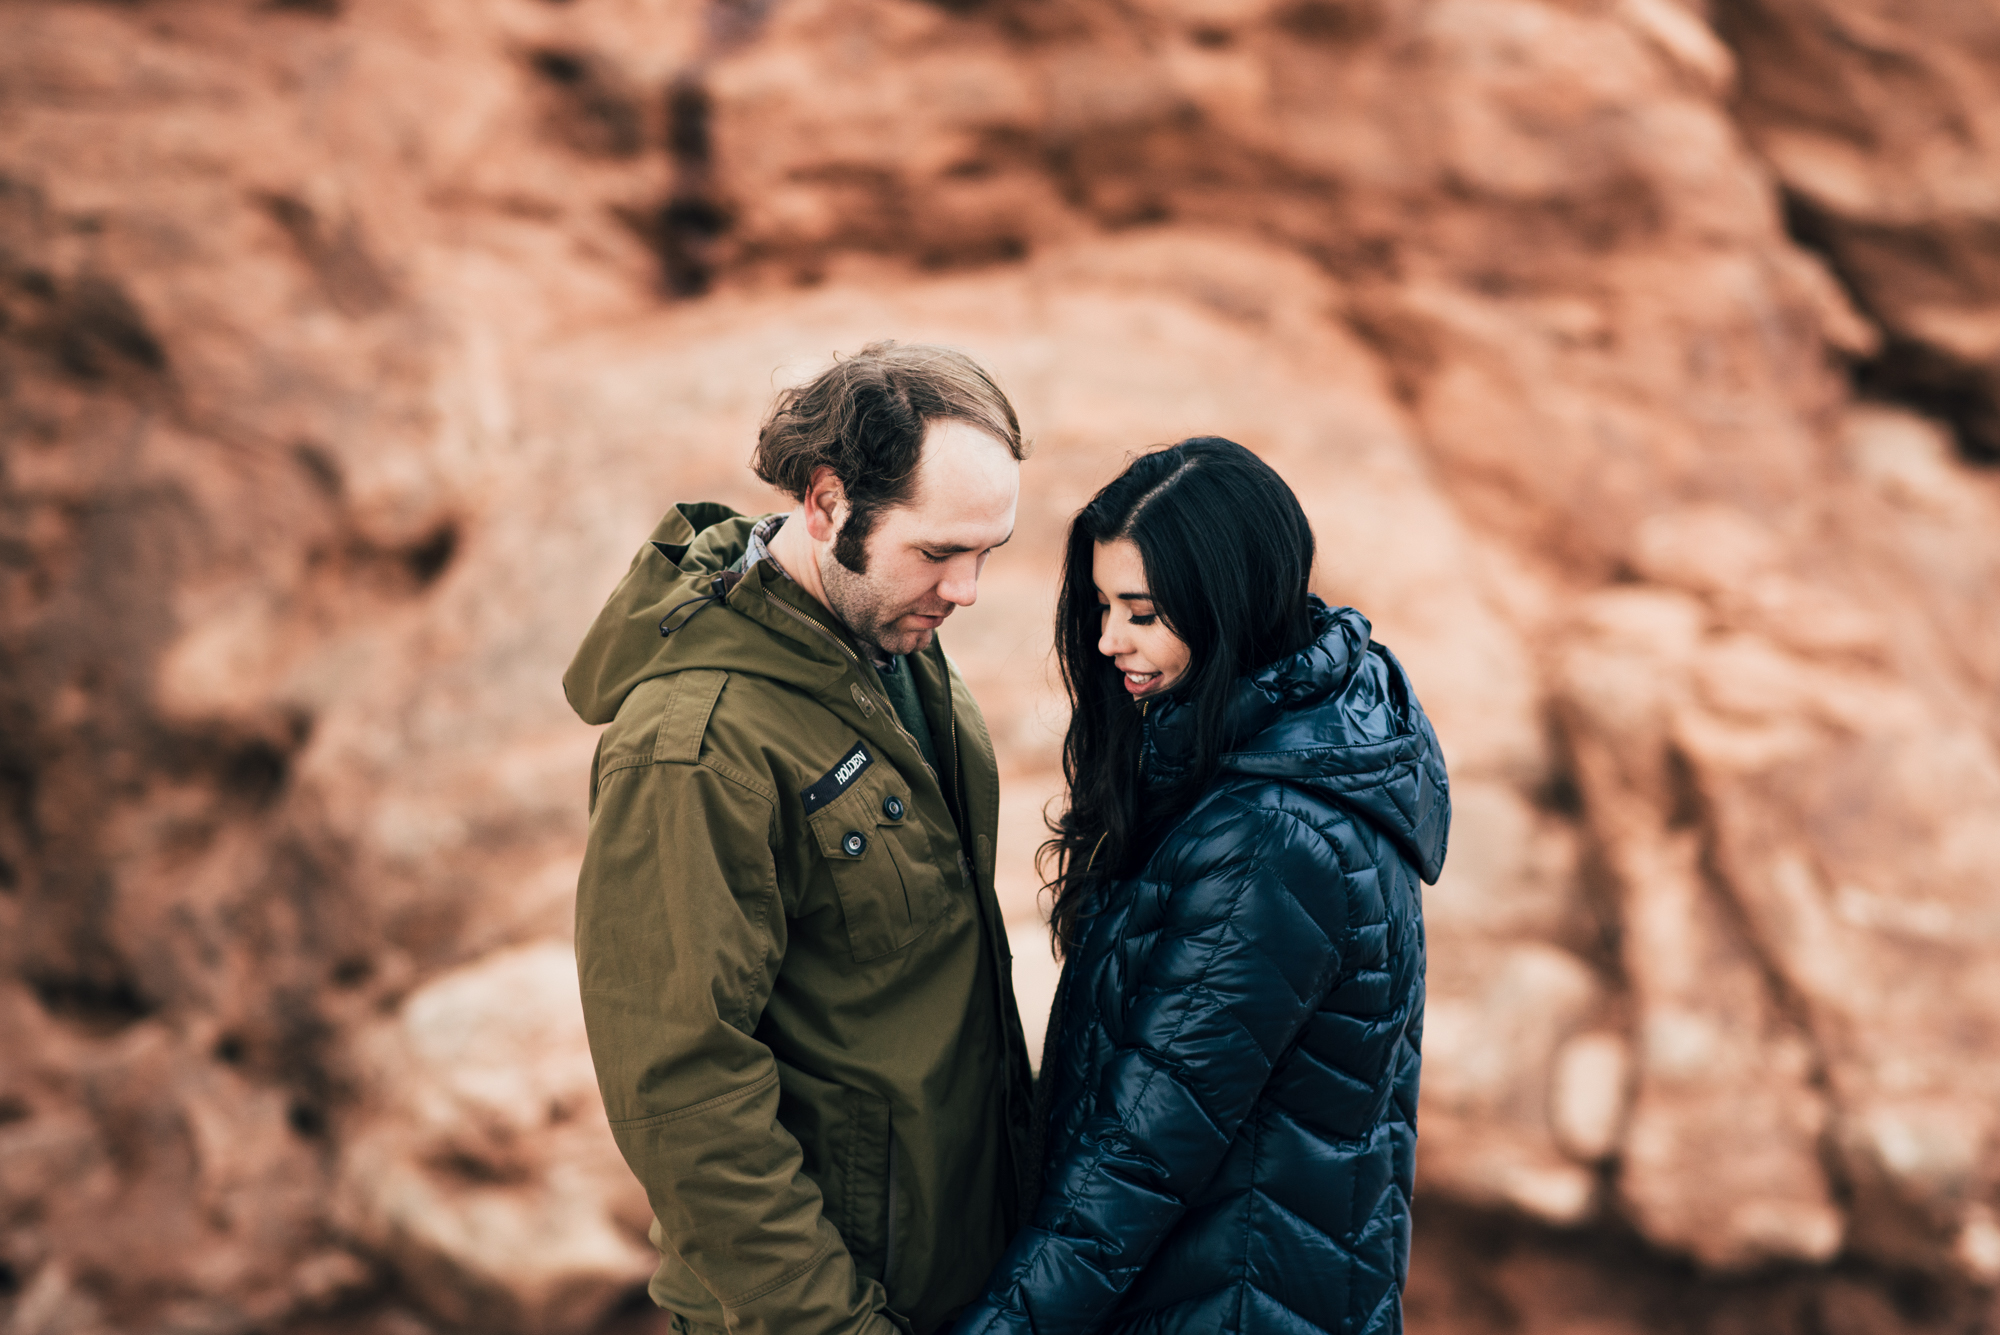 ©Isaiah & Taylor Photography - Arches National Park Adventure Engagement, Moab Utah-026.jpg